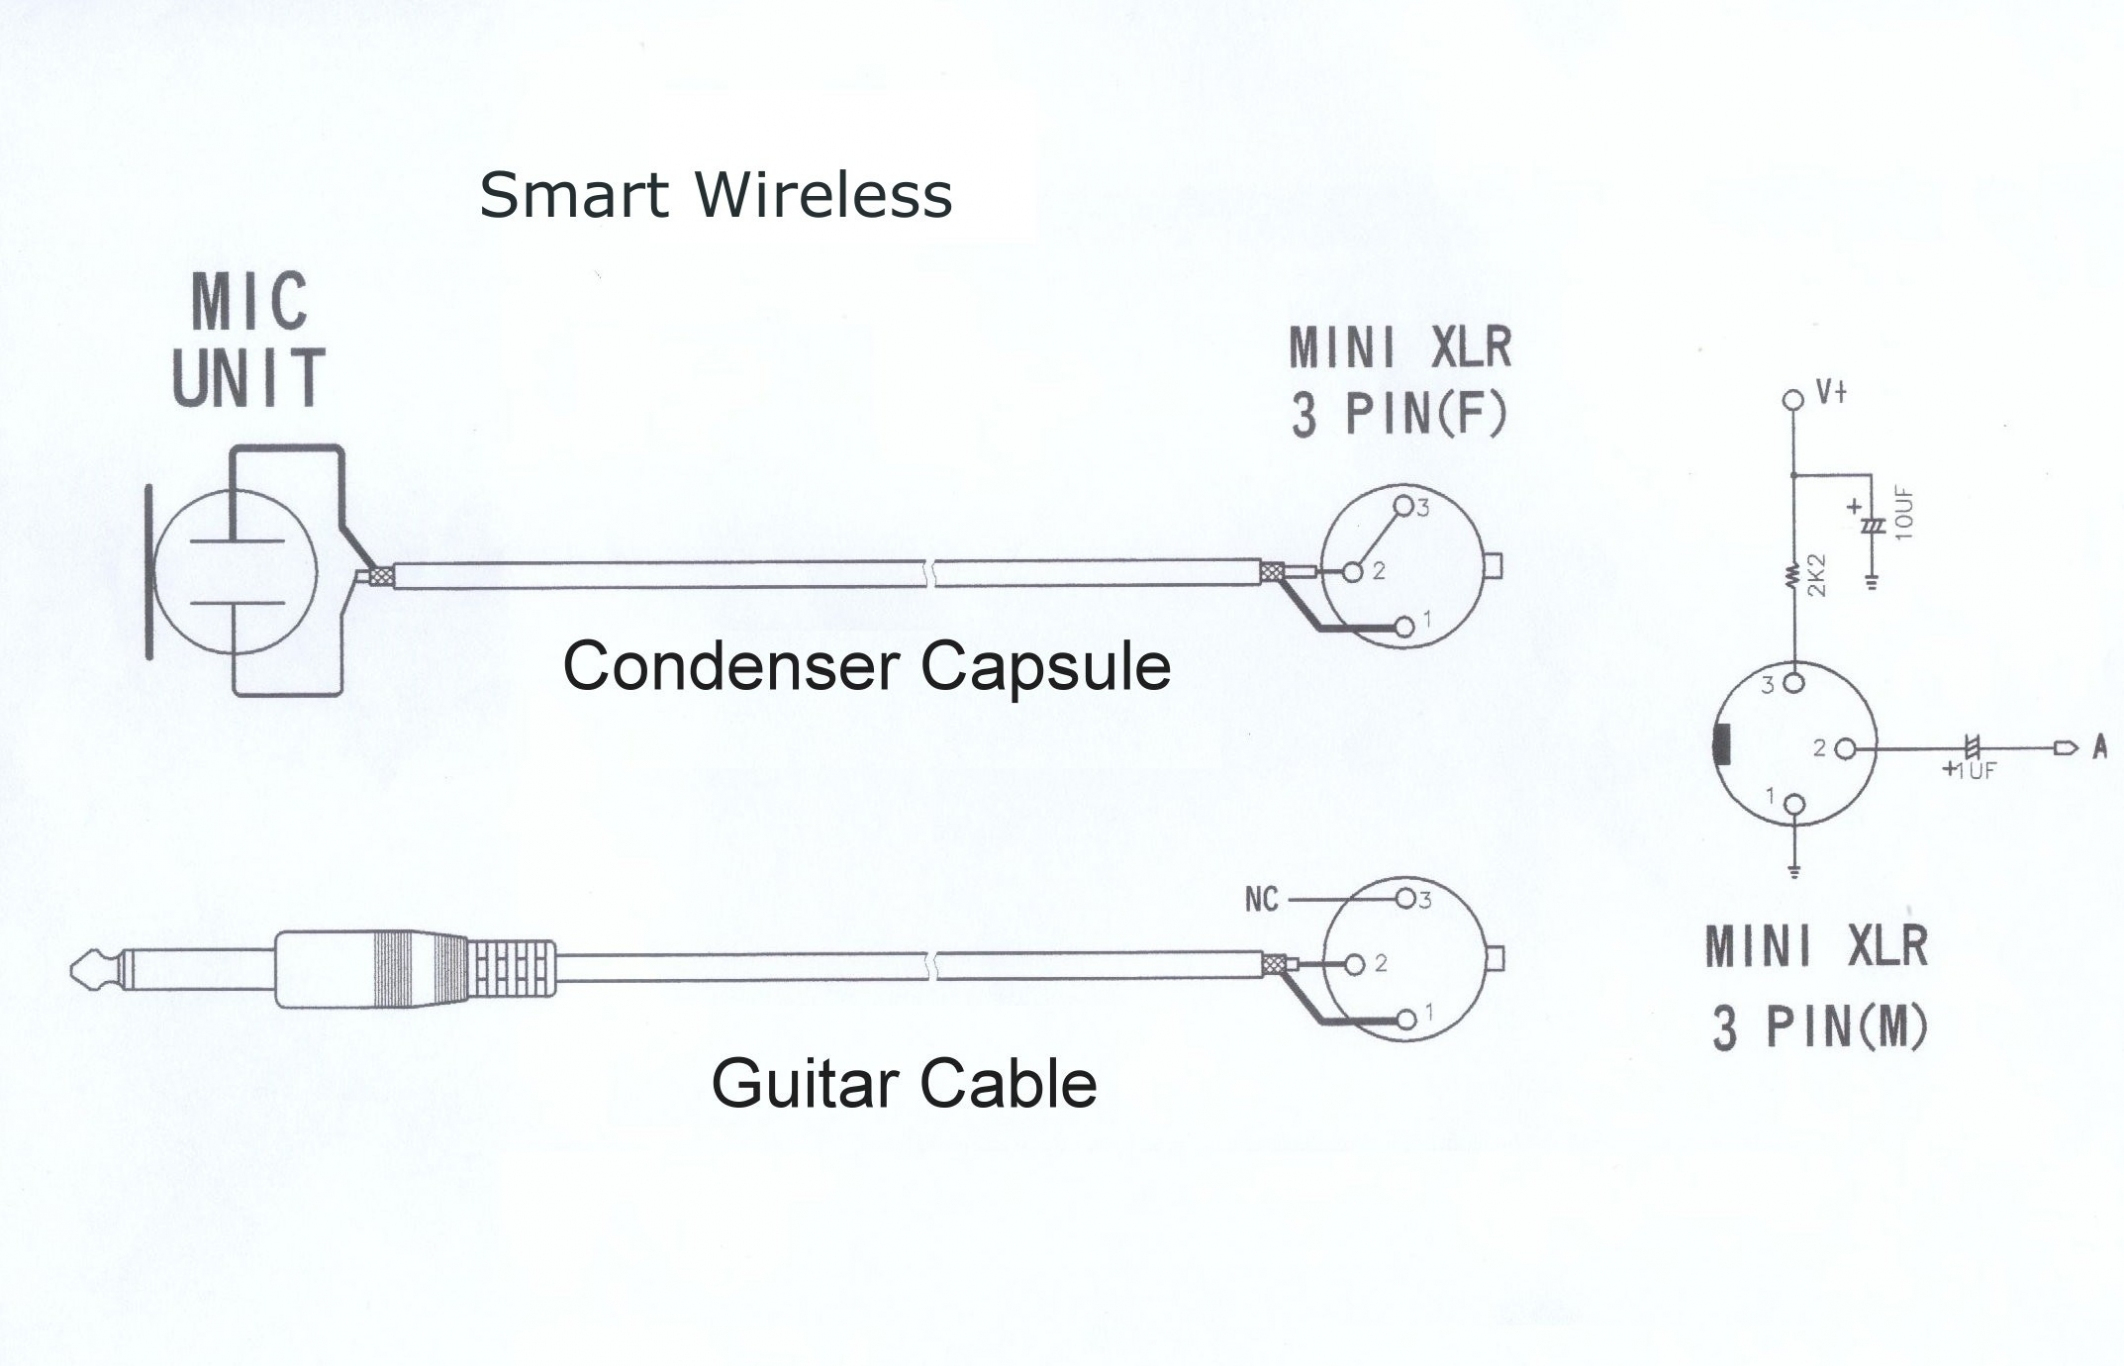 4 Pin Xlr Intercom Wiring Diagram | Wiring Diagram  Pin Xlr Intercom Wiring Diagram on 4 pin molex power connector, 4 pin connector diagram, av micro 4pin wiring-diagram, 5 pin xlr wiring-diagram,